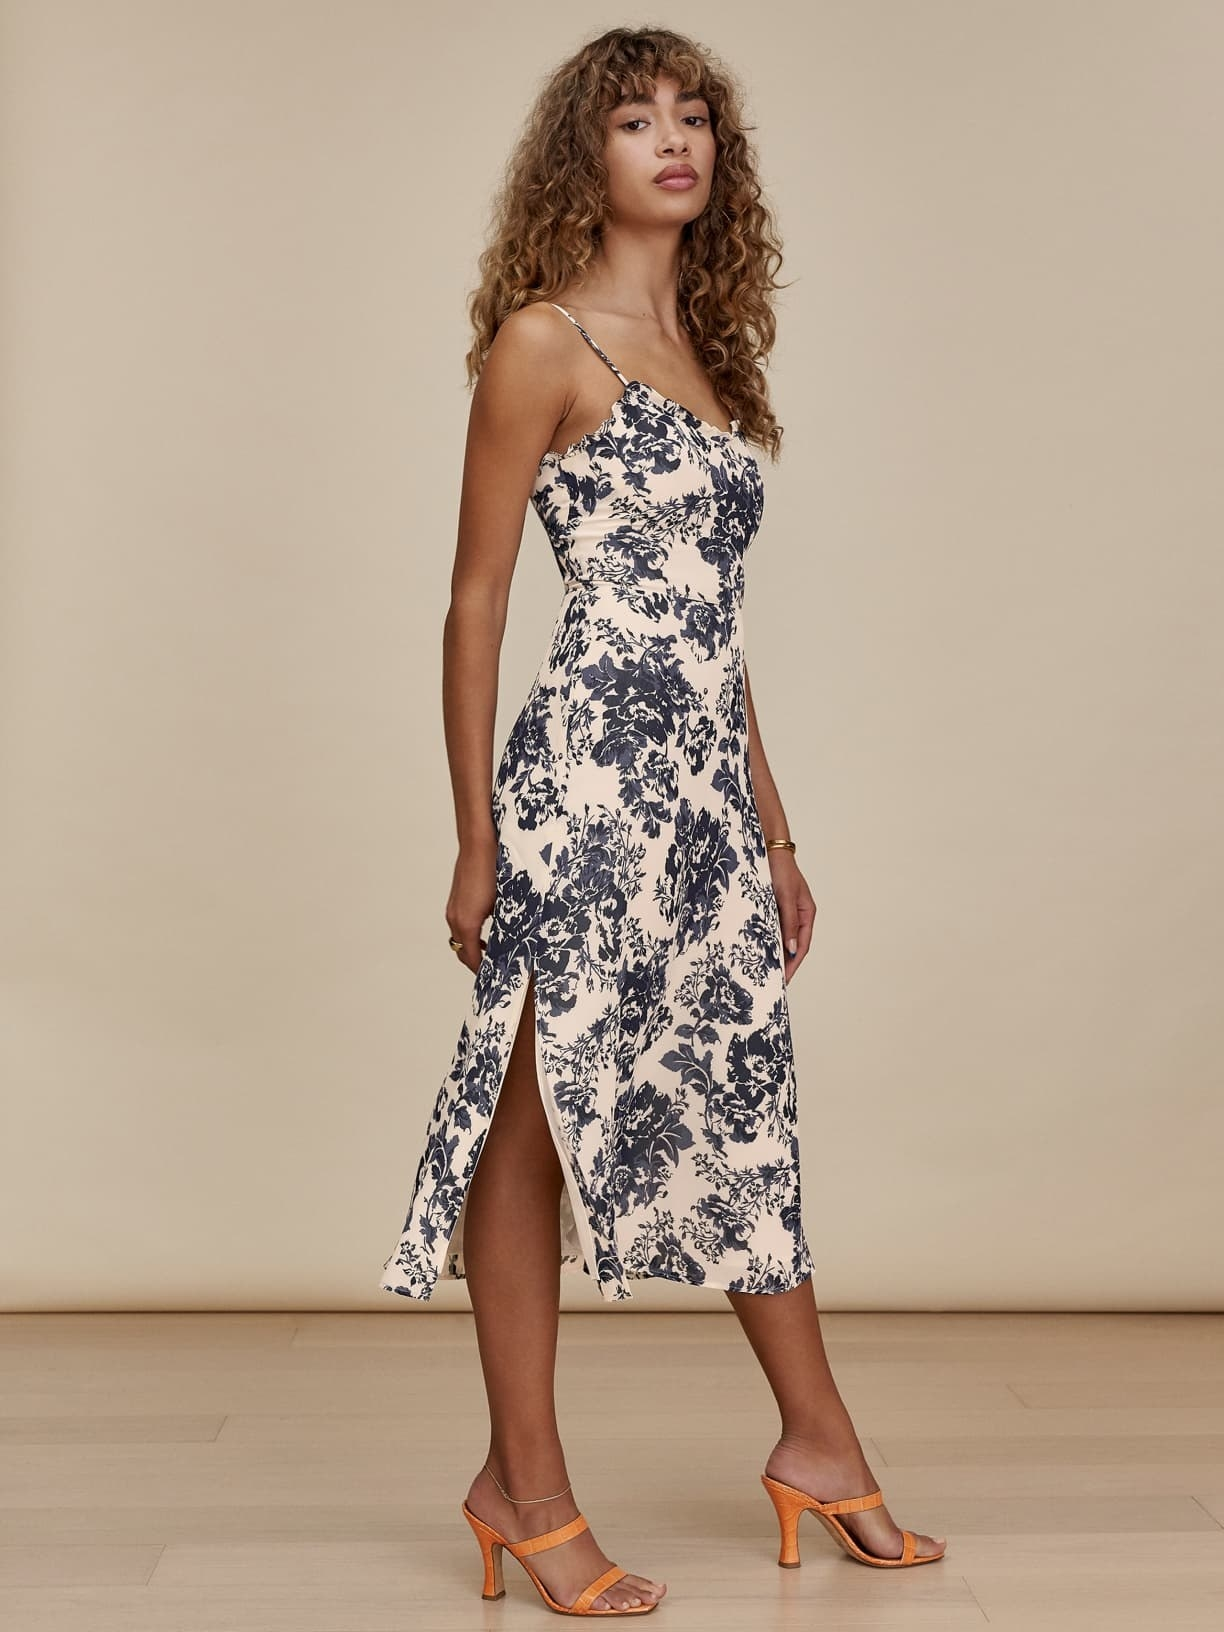 model wearing the mid-length spaghetti strap dress in white with blue flowers all over it